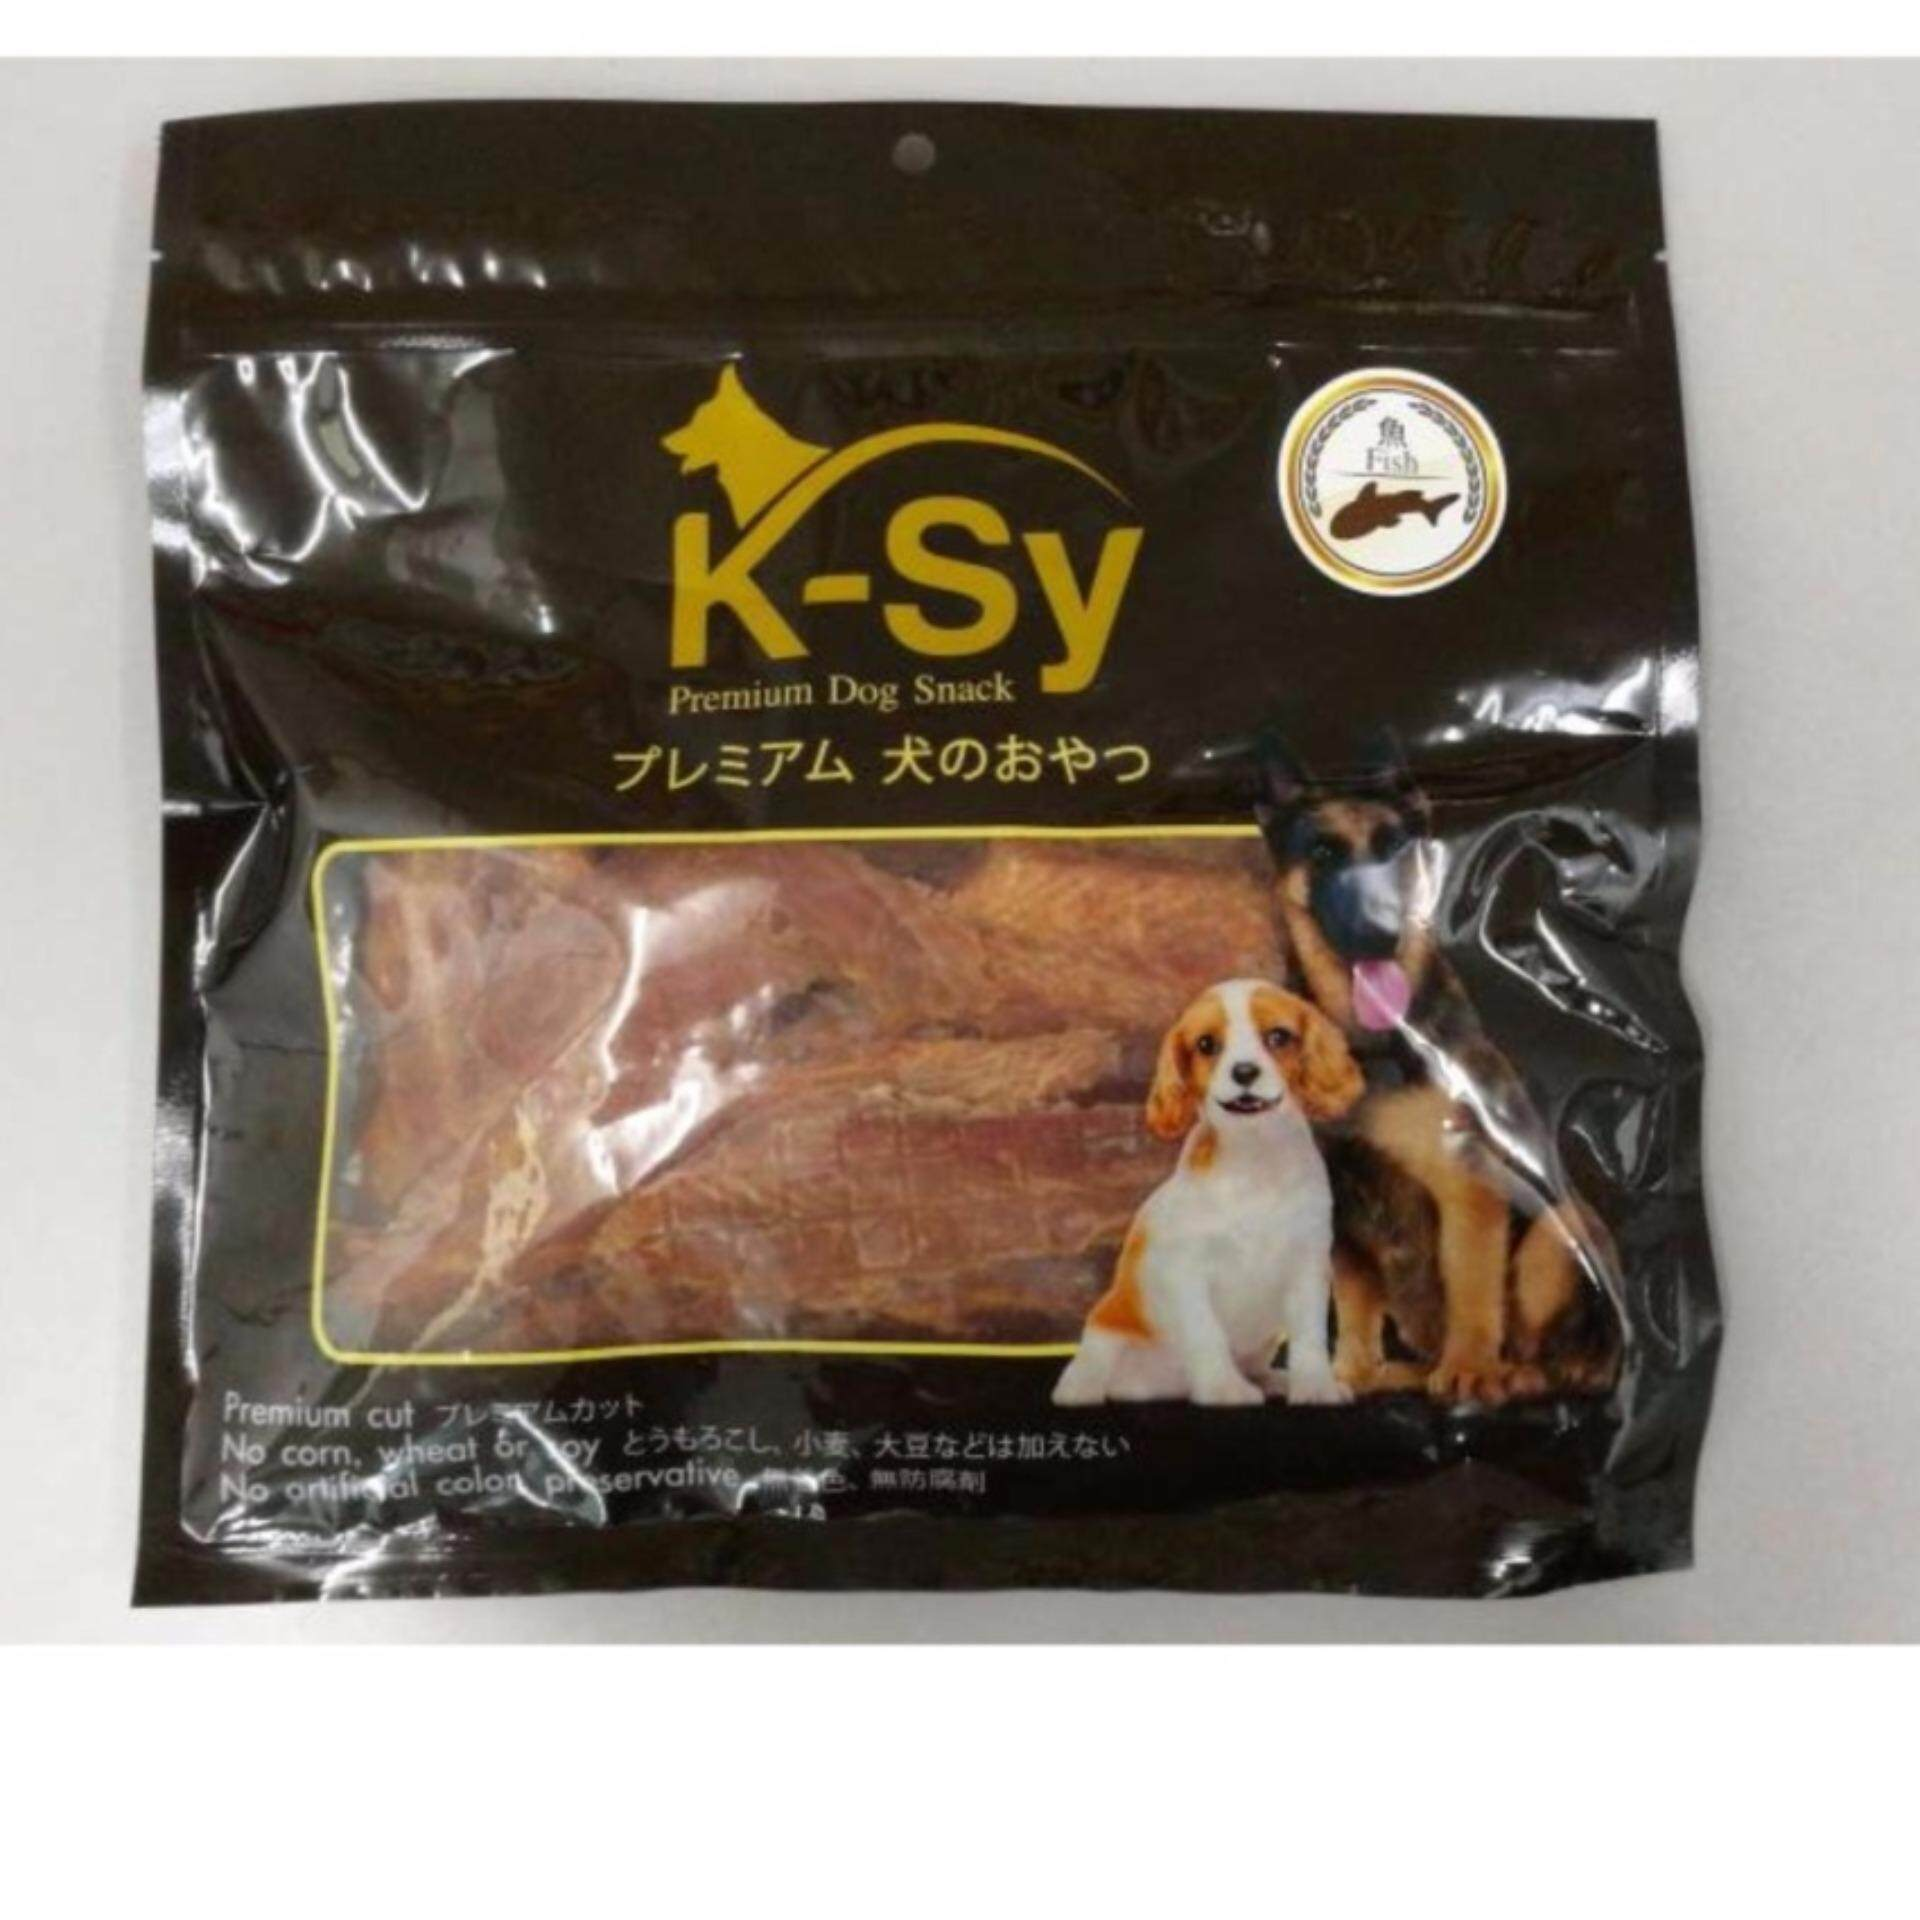 K-Sy Premium Dog Snack 250gm ( Fish Flavor )